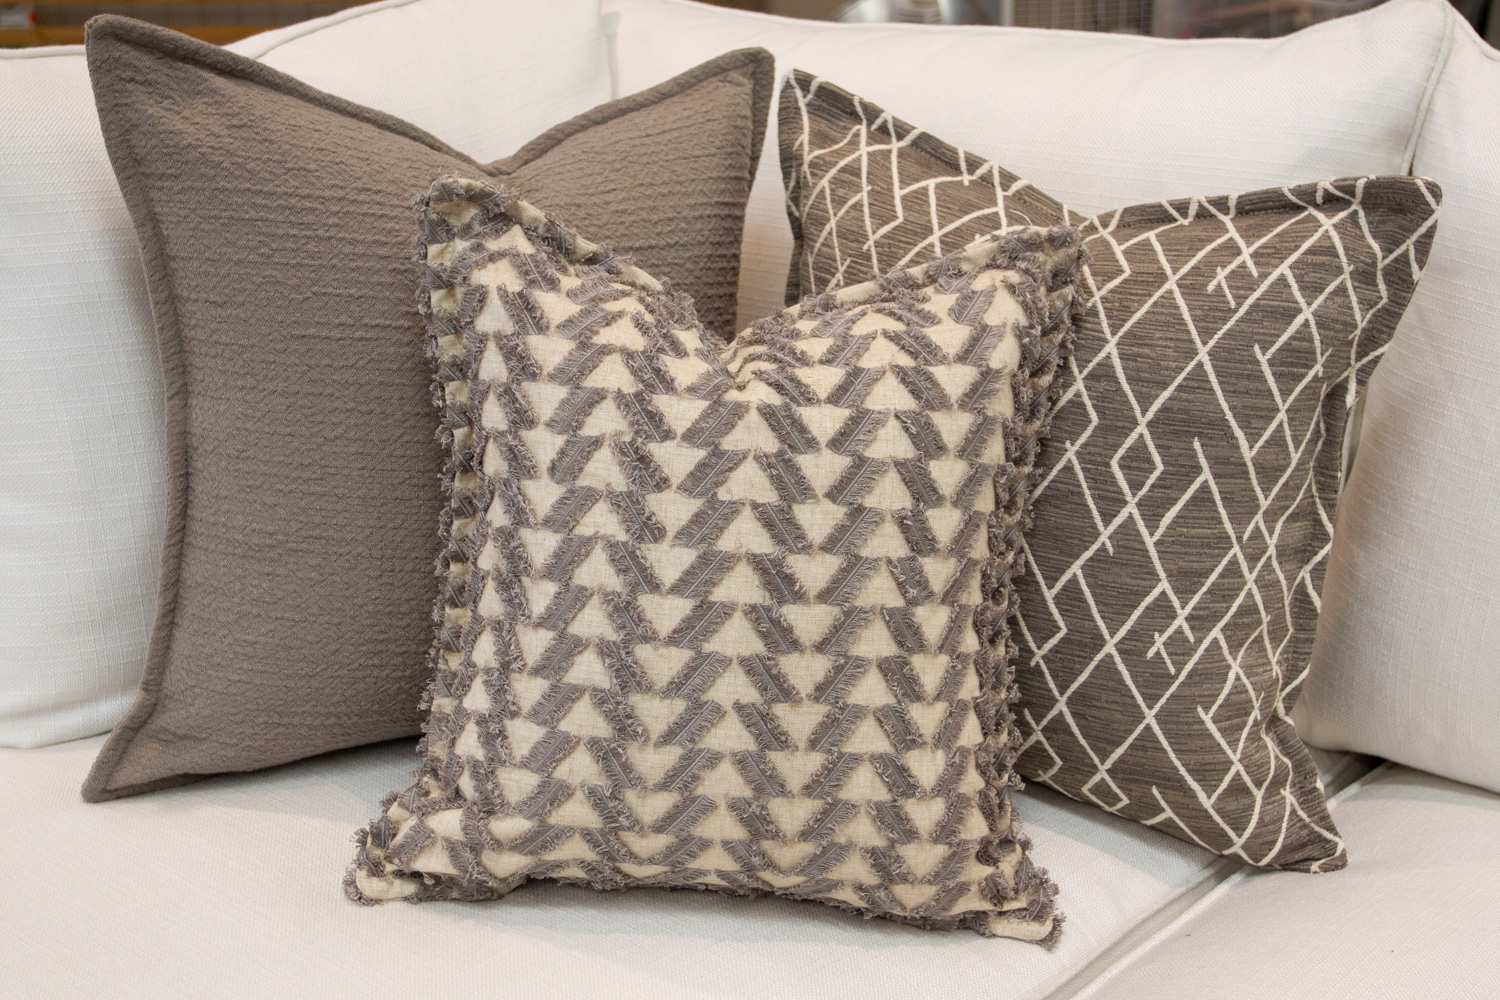 Chameleon Style 12 Days Of Pillows 2018 Grey Texture Day 4 Chameleon Style